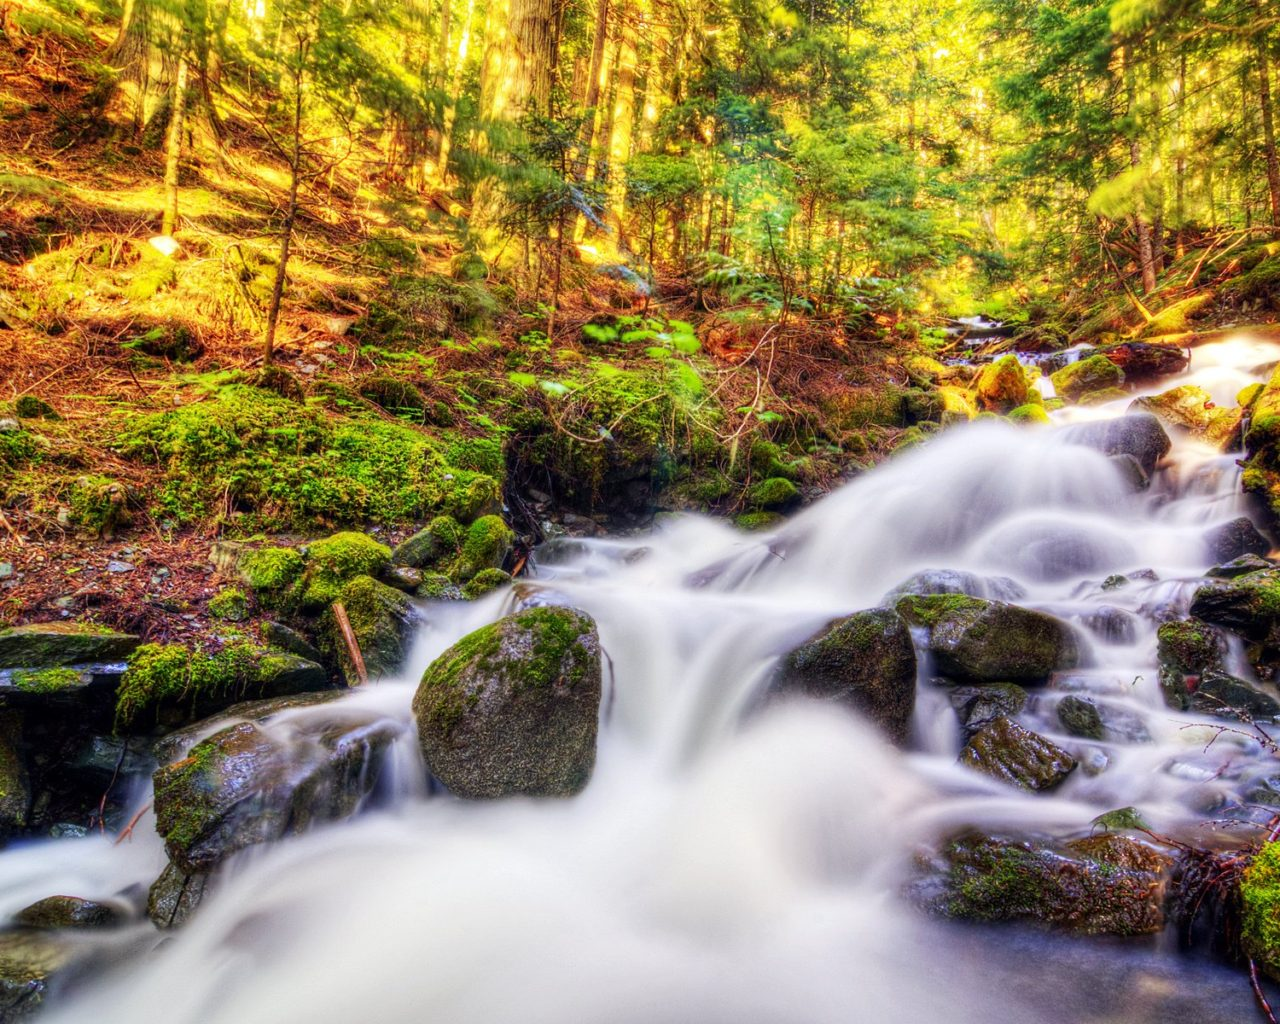 Fall Wallpaper Hd 1280x1024 Nature Landscape Canada Autumn Forest Stream Moss Stones